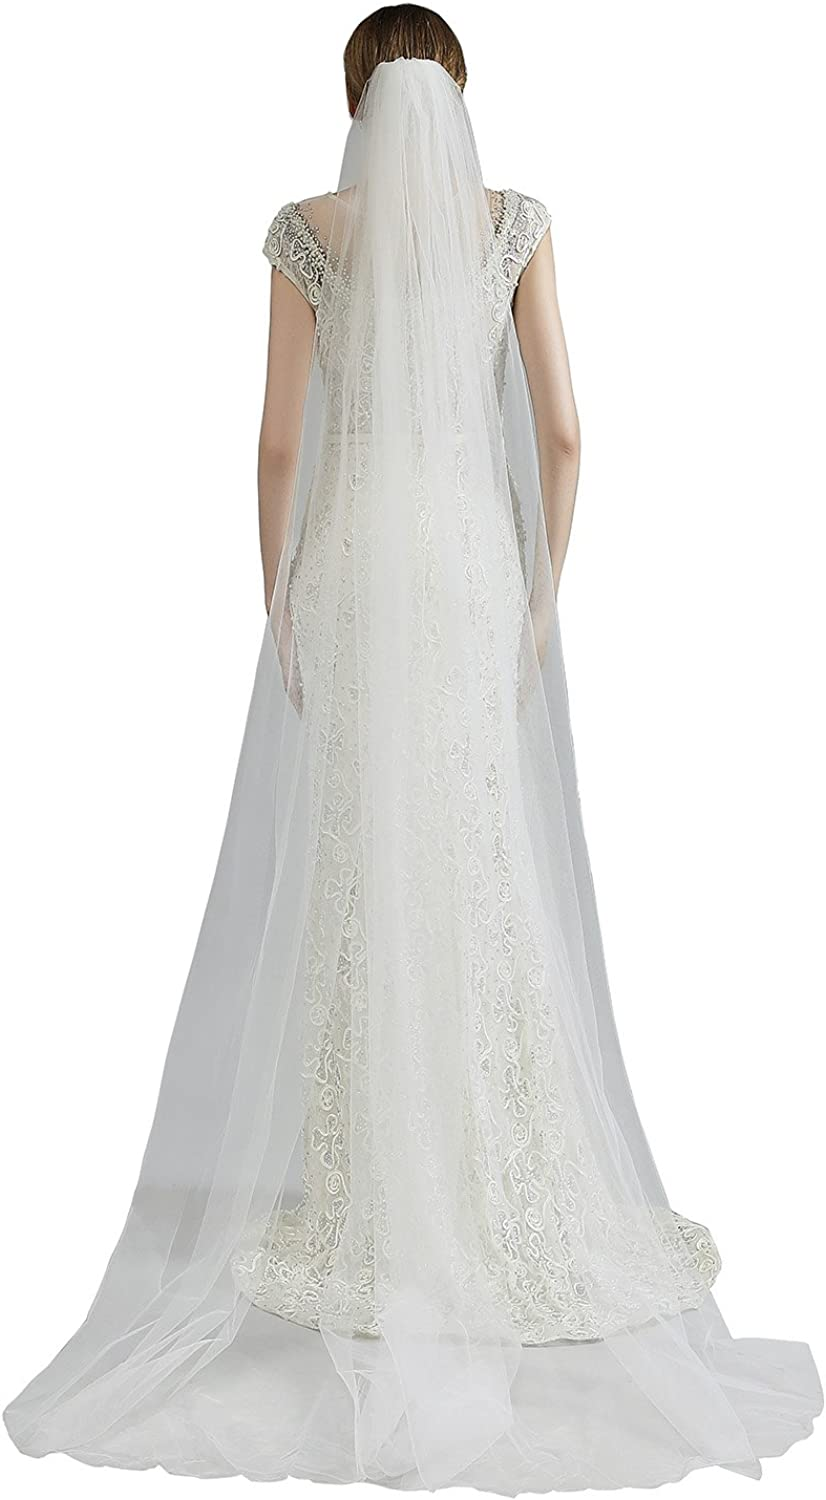 Sarahbridal Women's Soft Tulle Chapel Cathedral Bridal Veils With Comb Long Wedding Veil 11059